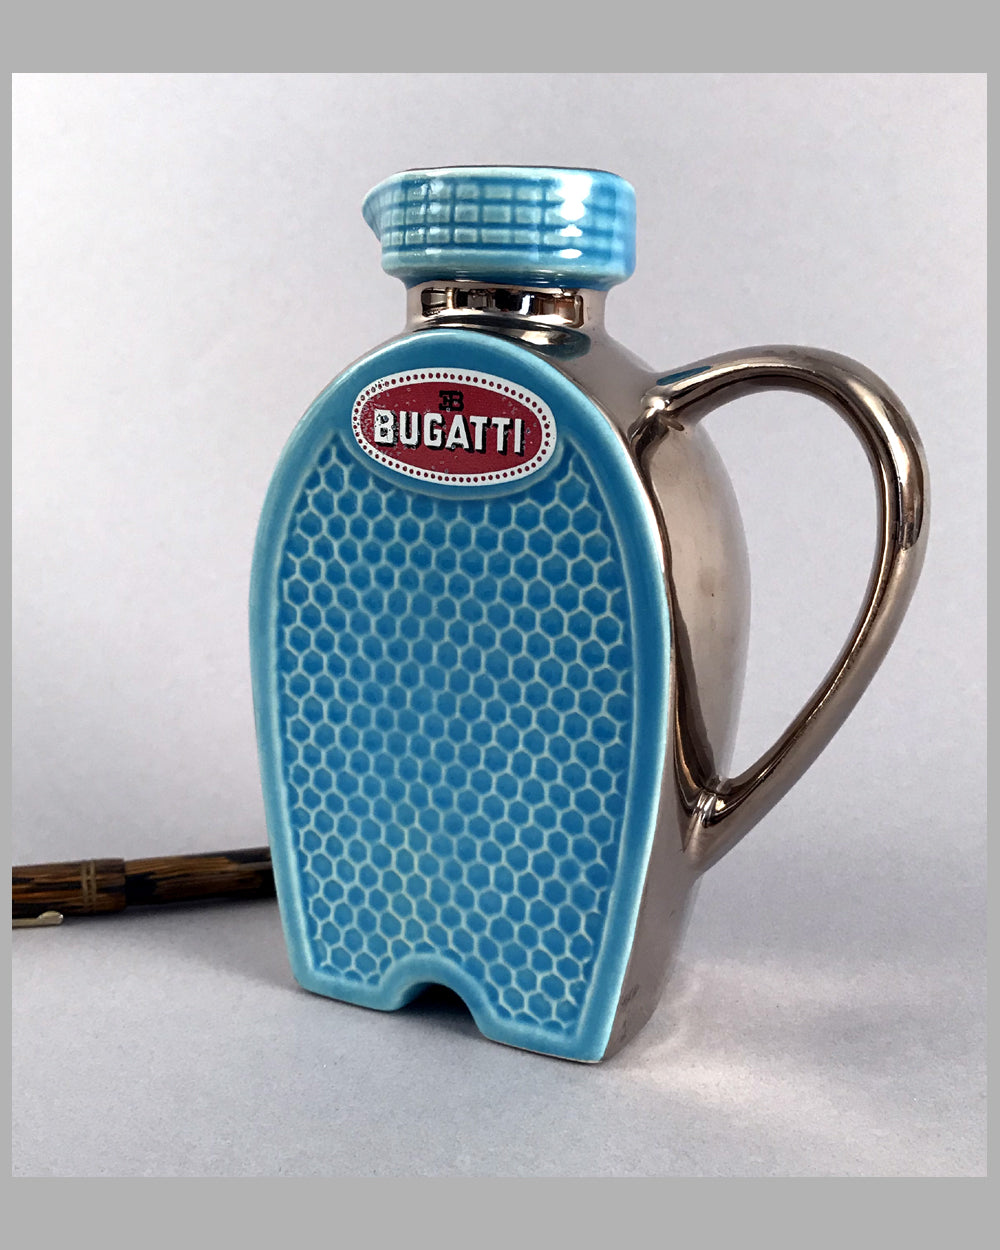 Le Chanteclair - Bugatti ceramic water pitcher, 1970's